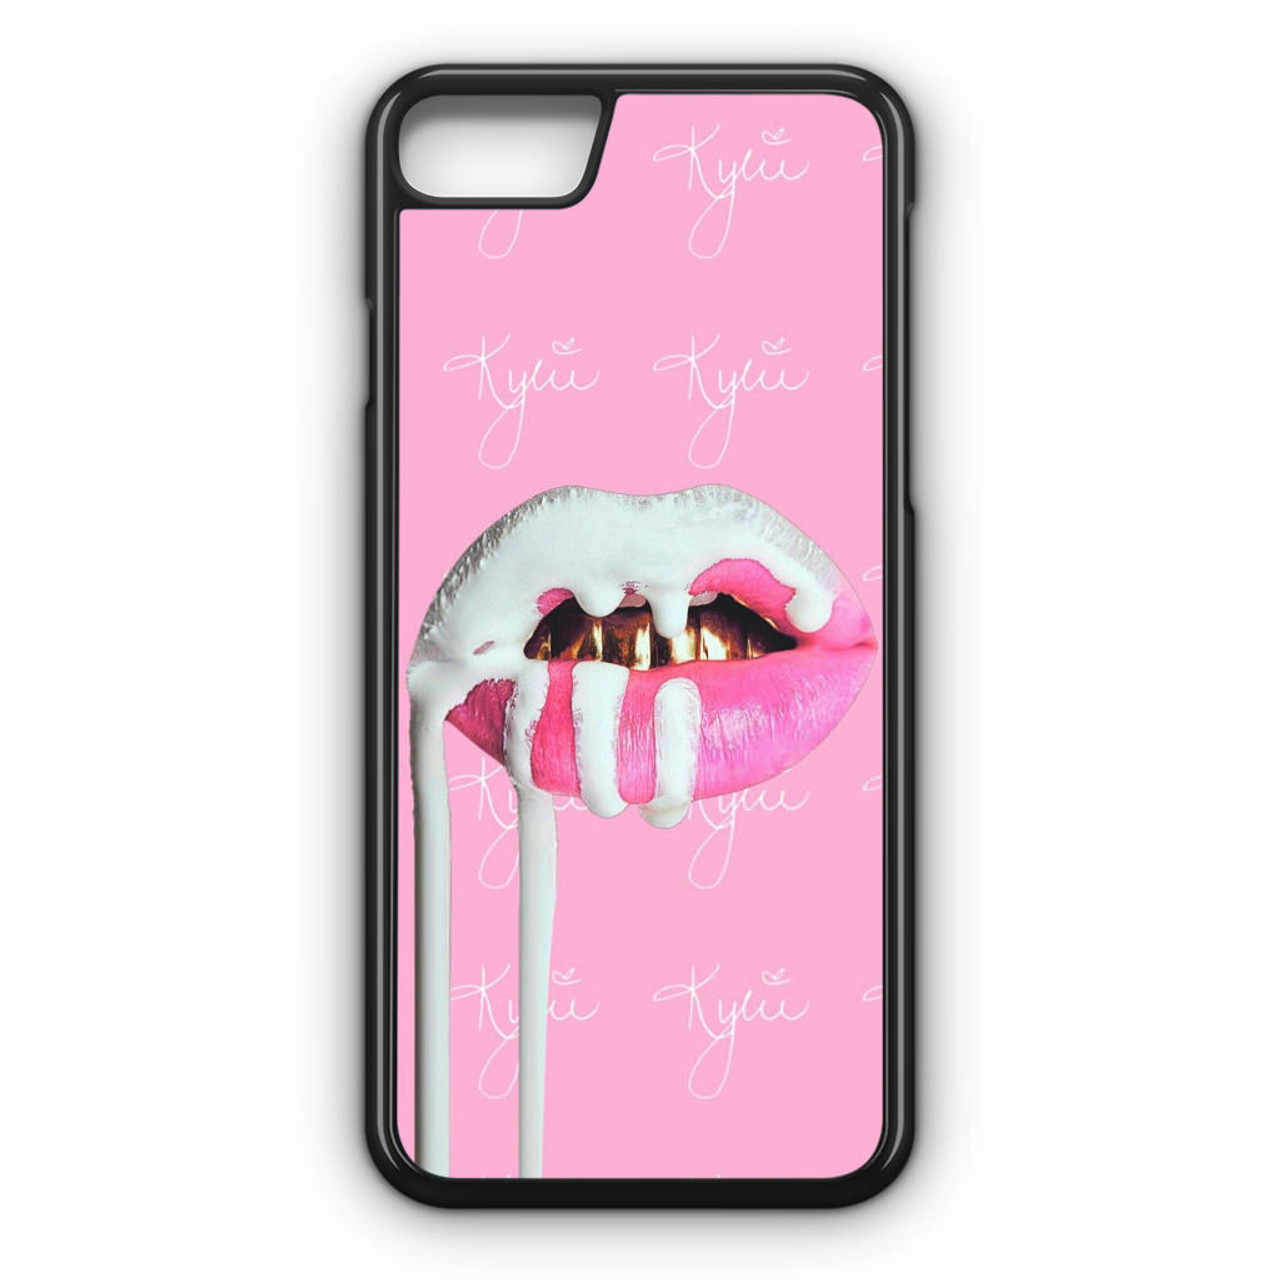 online store a4534 75882 Kylie Jenner Lips iPhone 8 Case